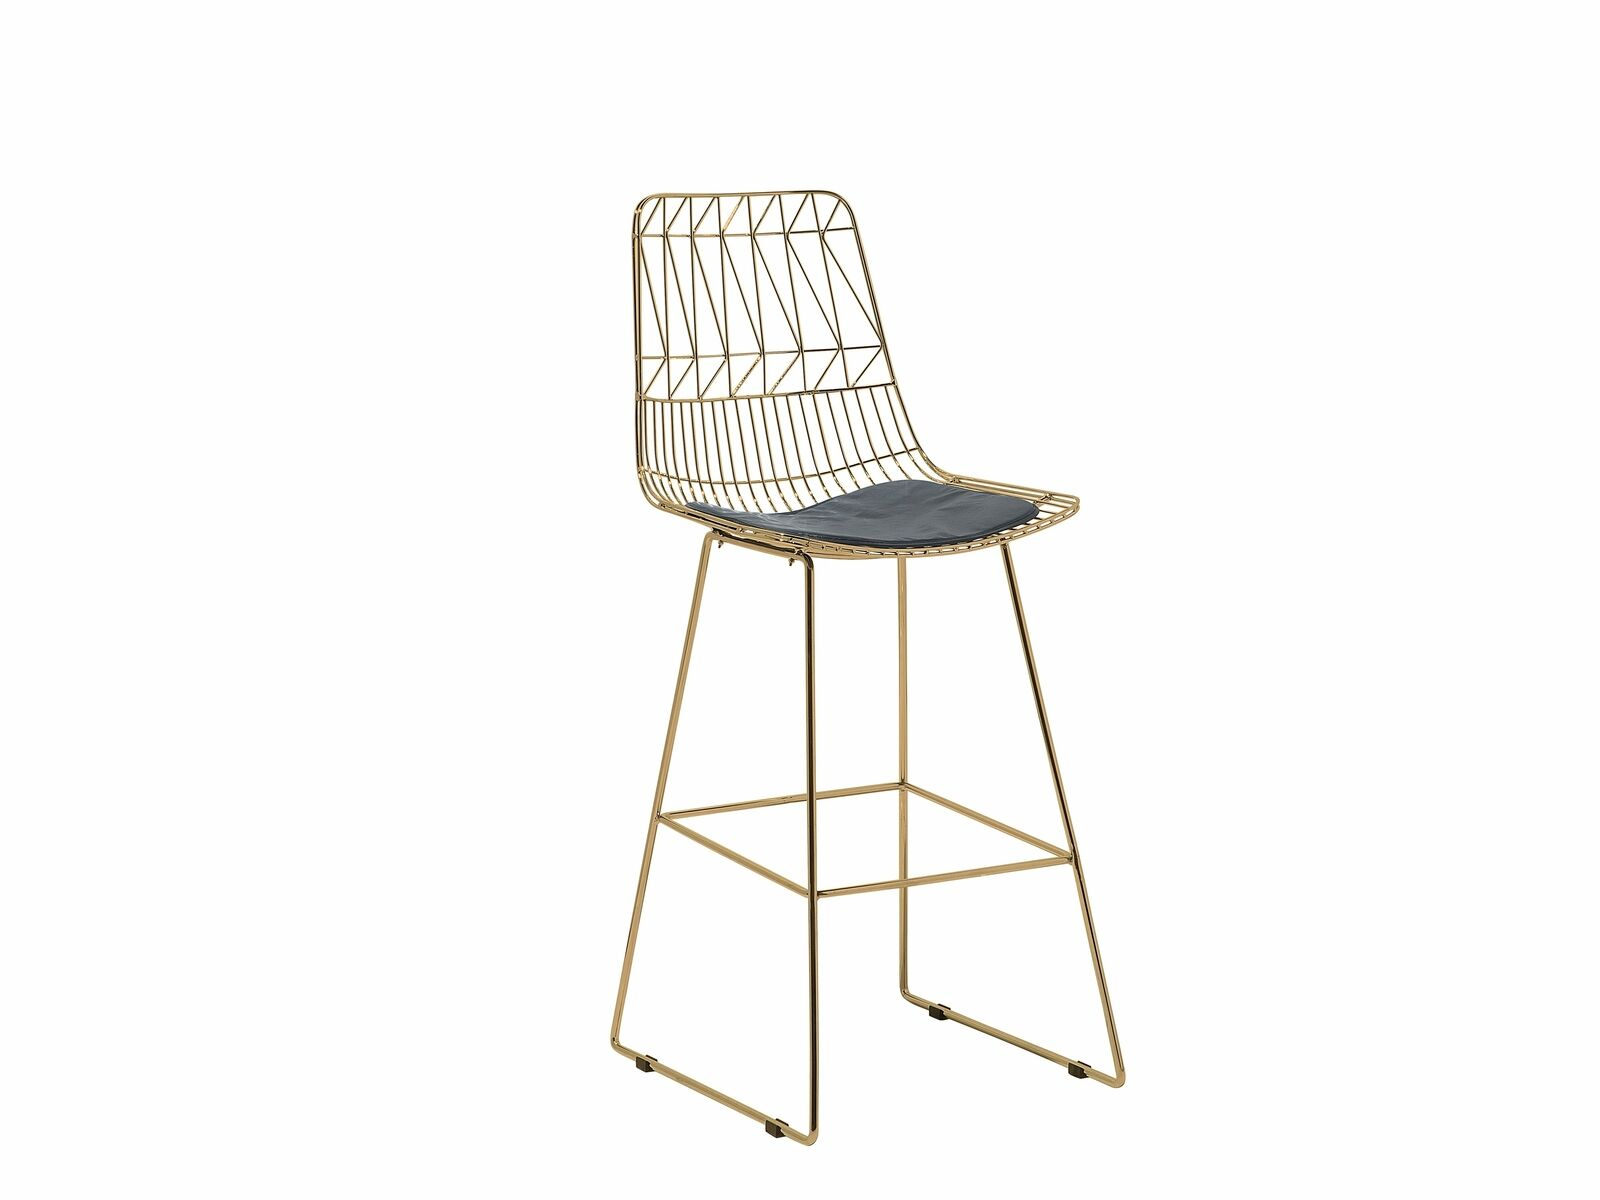 Golden Brass Bar Chair Gold . Black . Silver Orion Geometric Metal Counter Height 75 cm Bar Stool Chair High Back - Pebble & Leaf Homefurniture